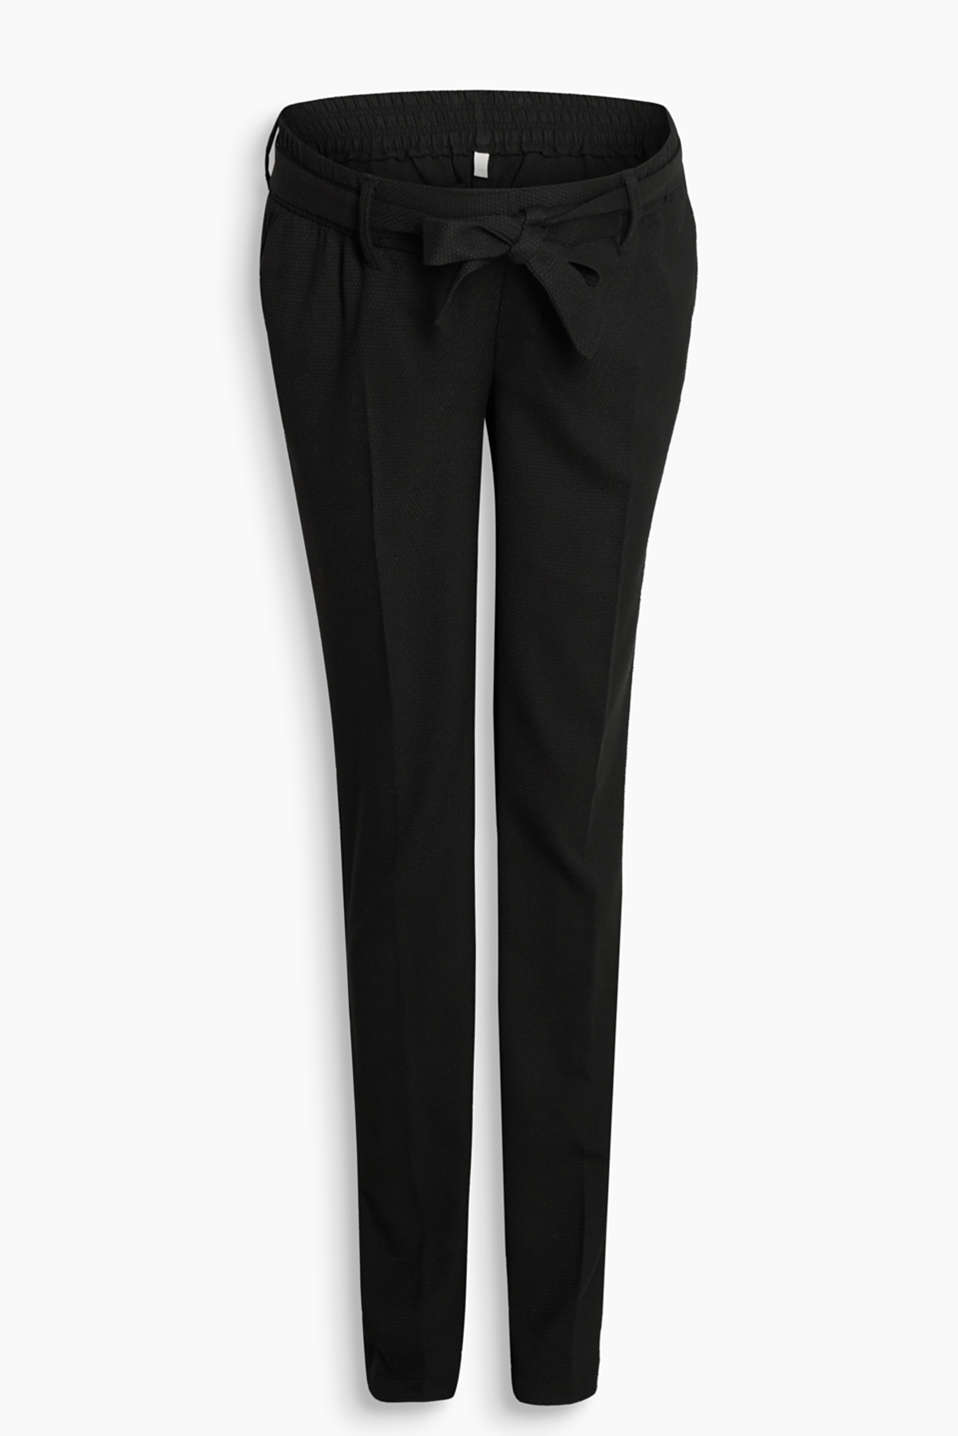 Textured woven trousers in a business look with stretch for comfort, a tie-around belt and protective under-bump waistband